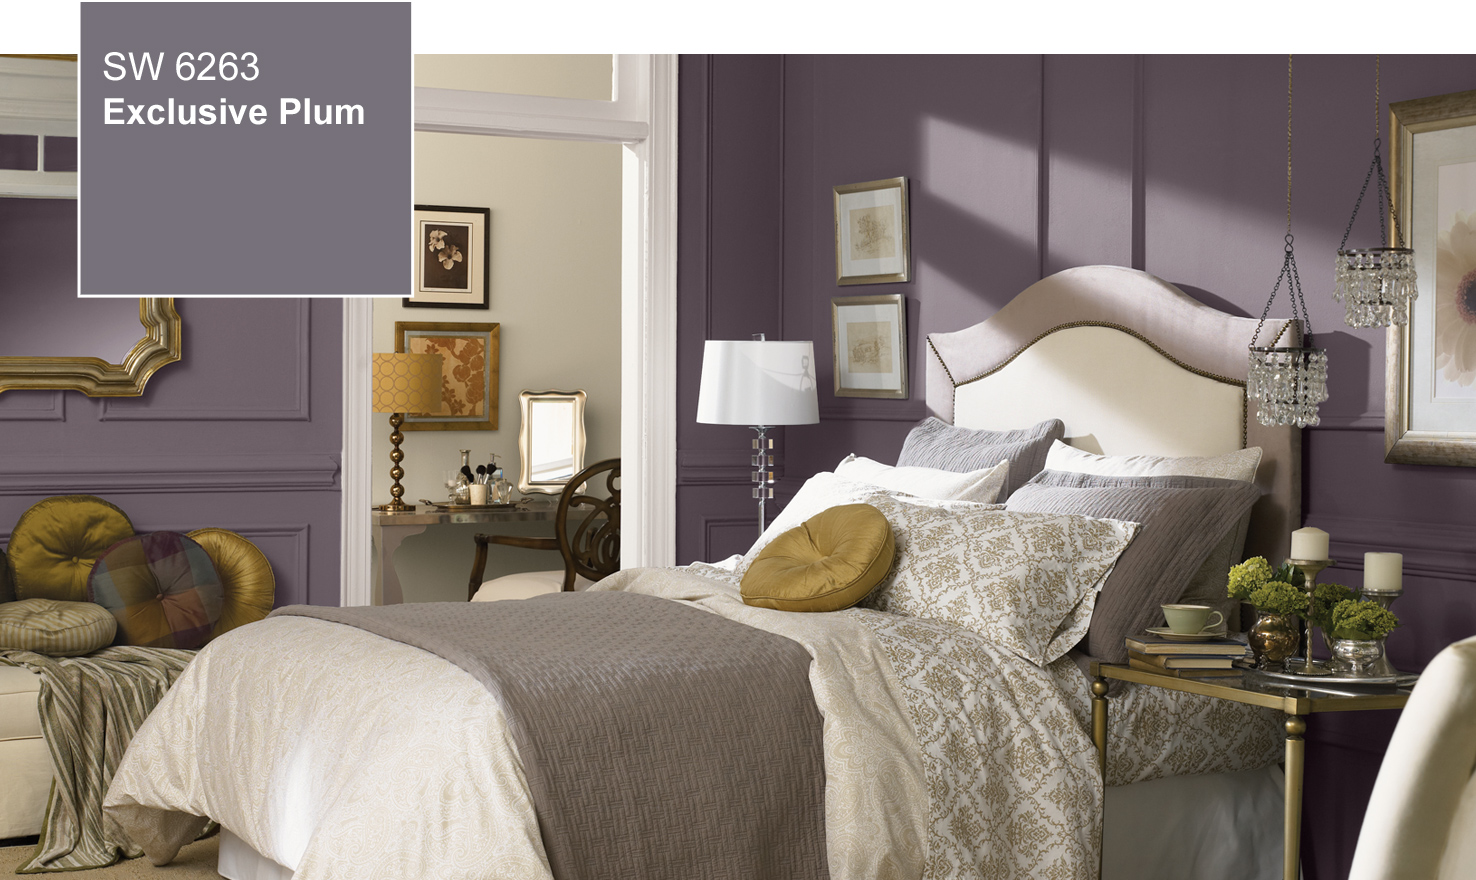 2014 Color Of The Year - Exclusive Plum (SW 6263) by Sherwin-